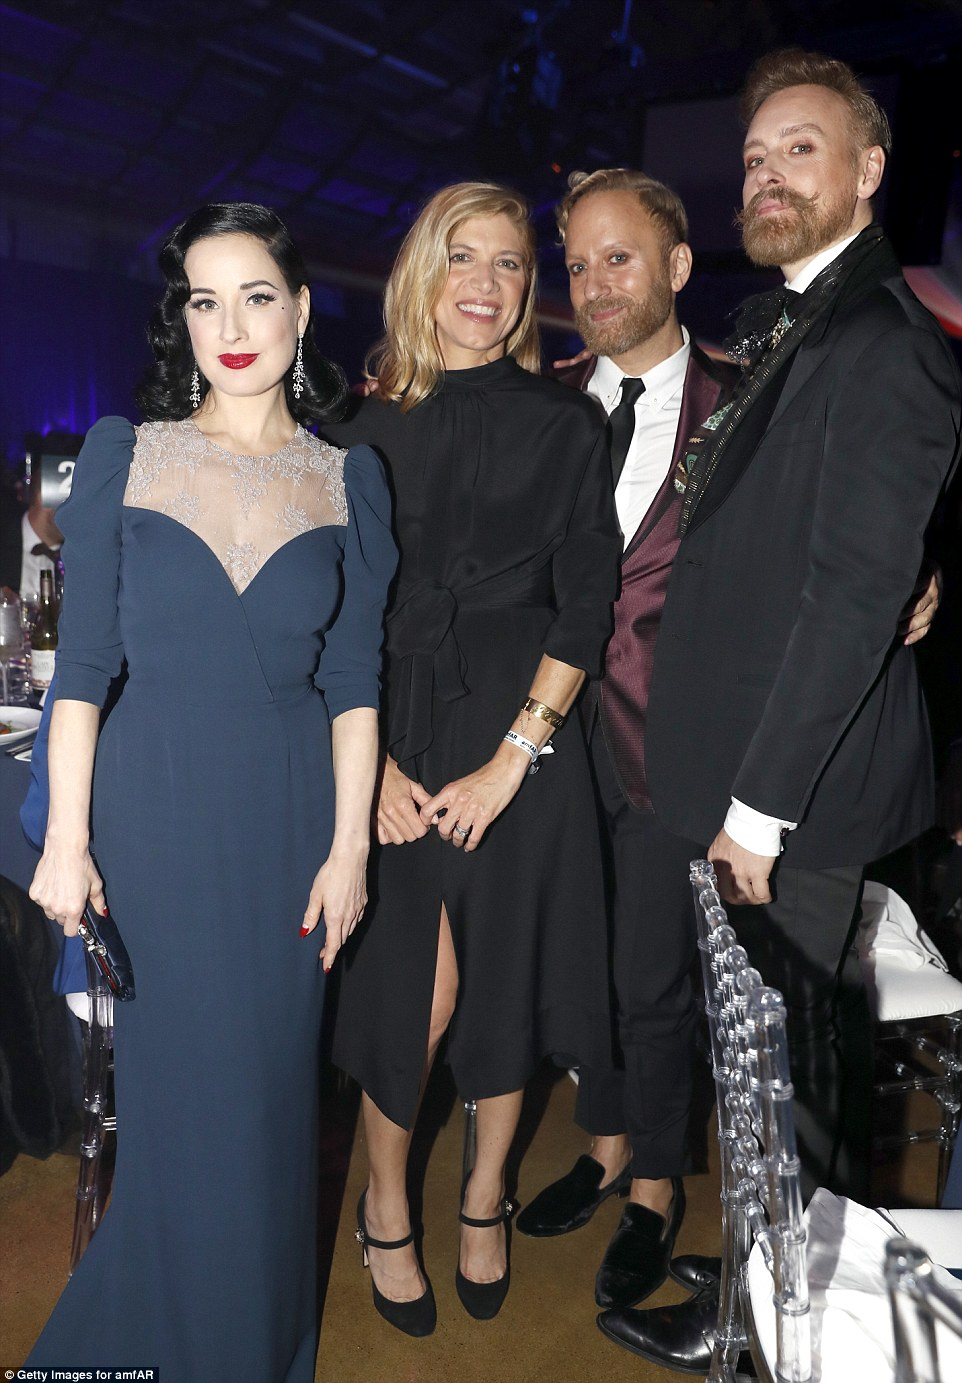 Looking sensational: Dita stood out in her beautiful dress as she caught up with fellow guests